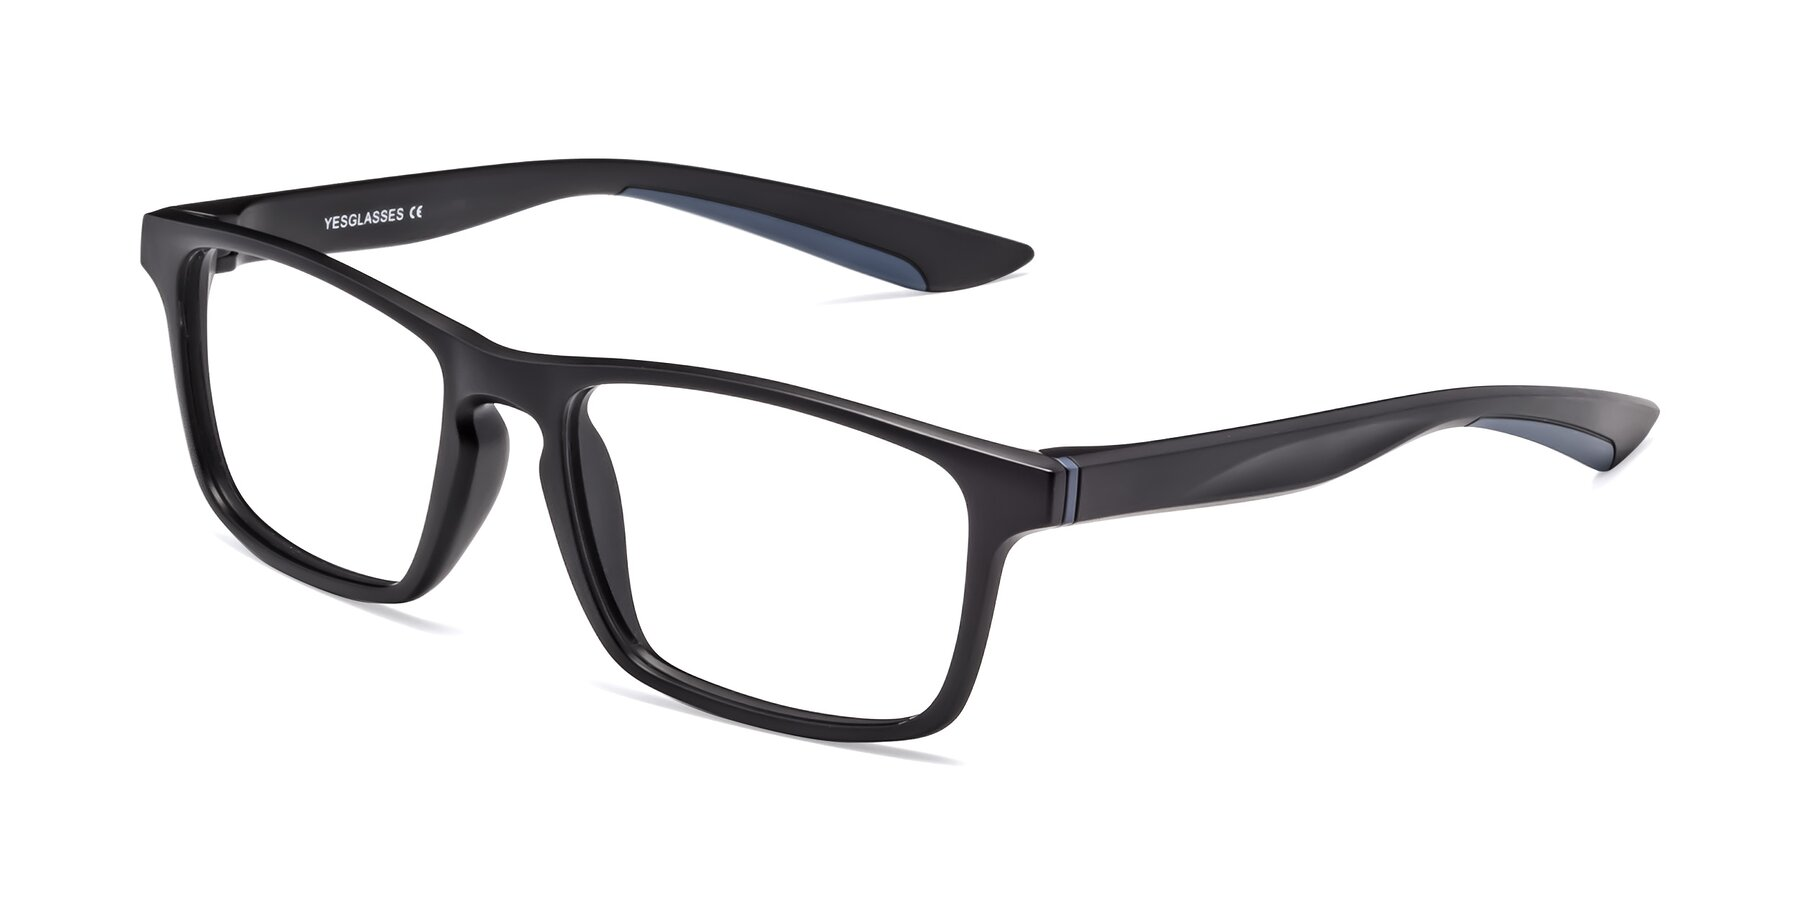 Angle of Passion in Matte Black-Blue with Clear Blue Light Blocking Lenses